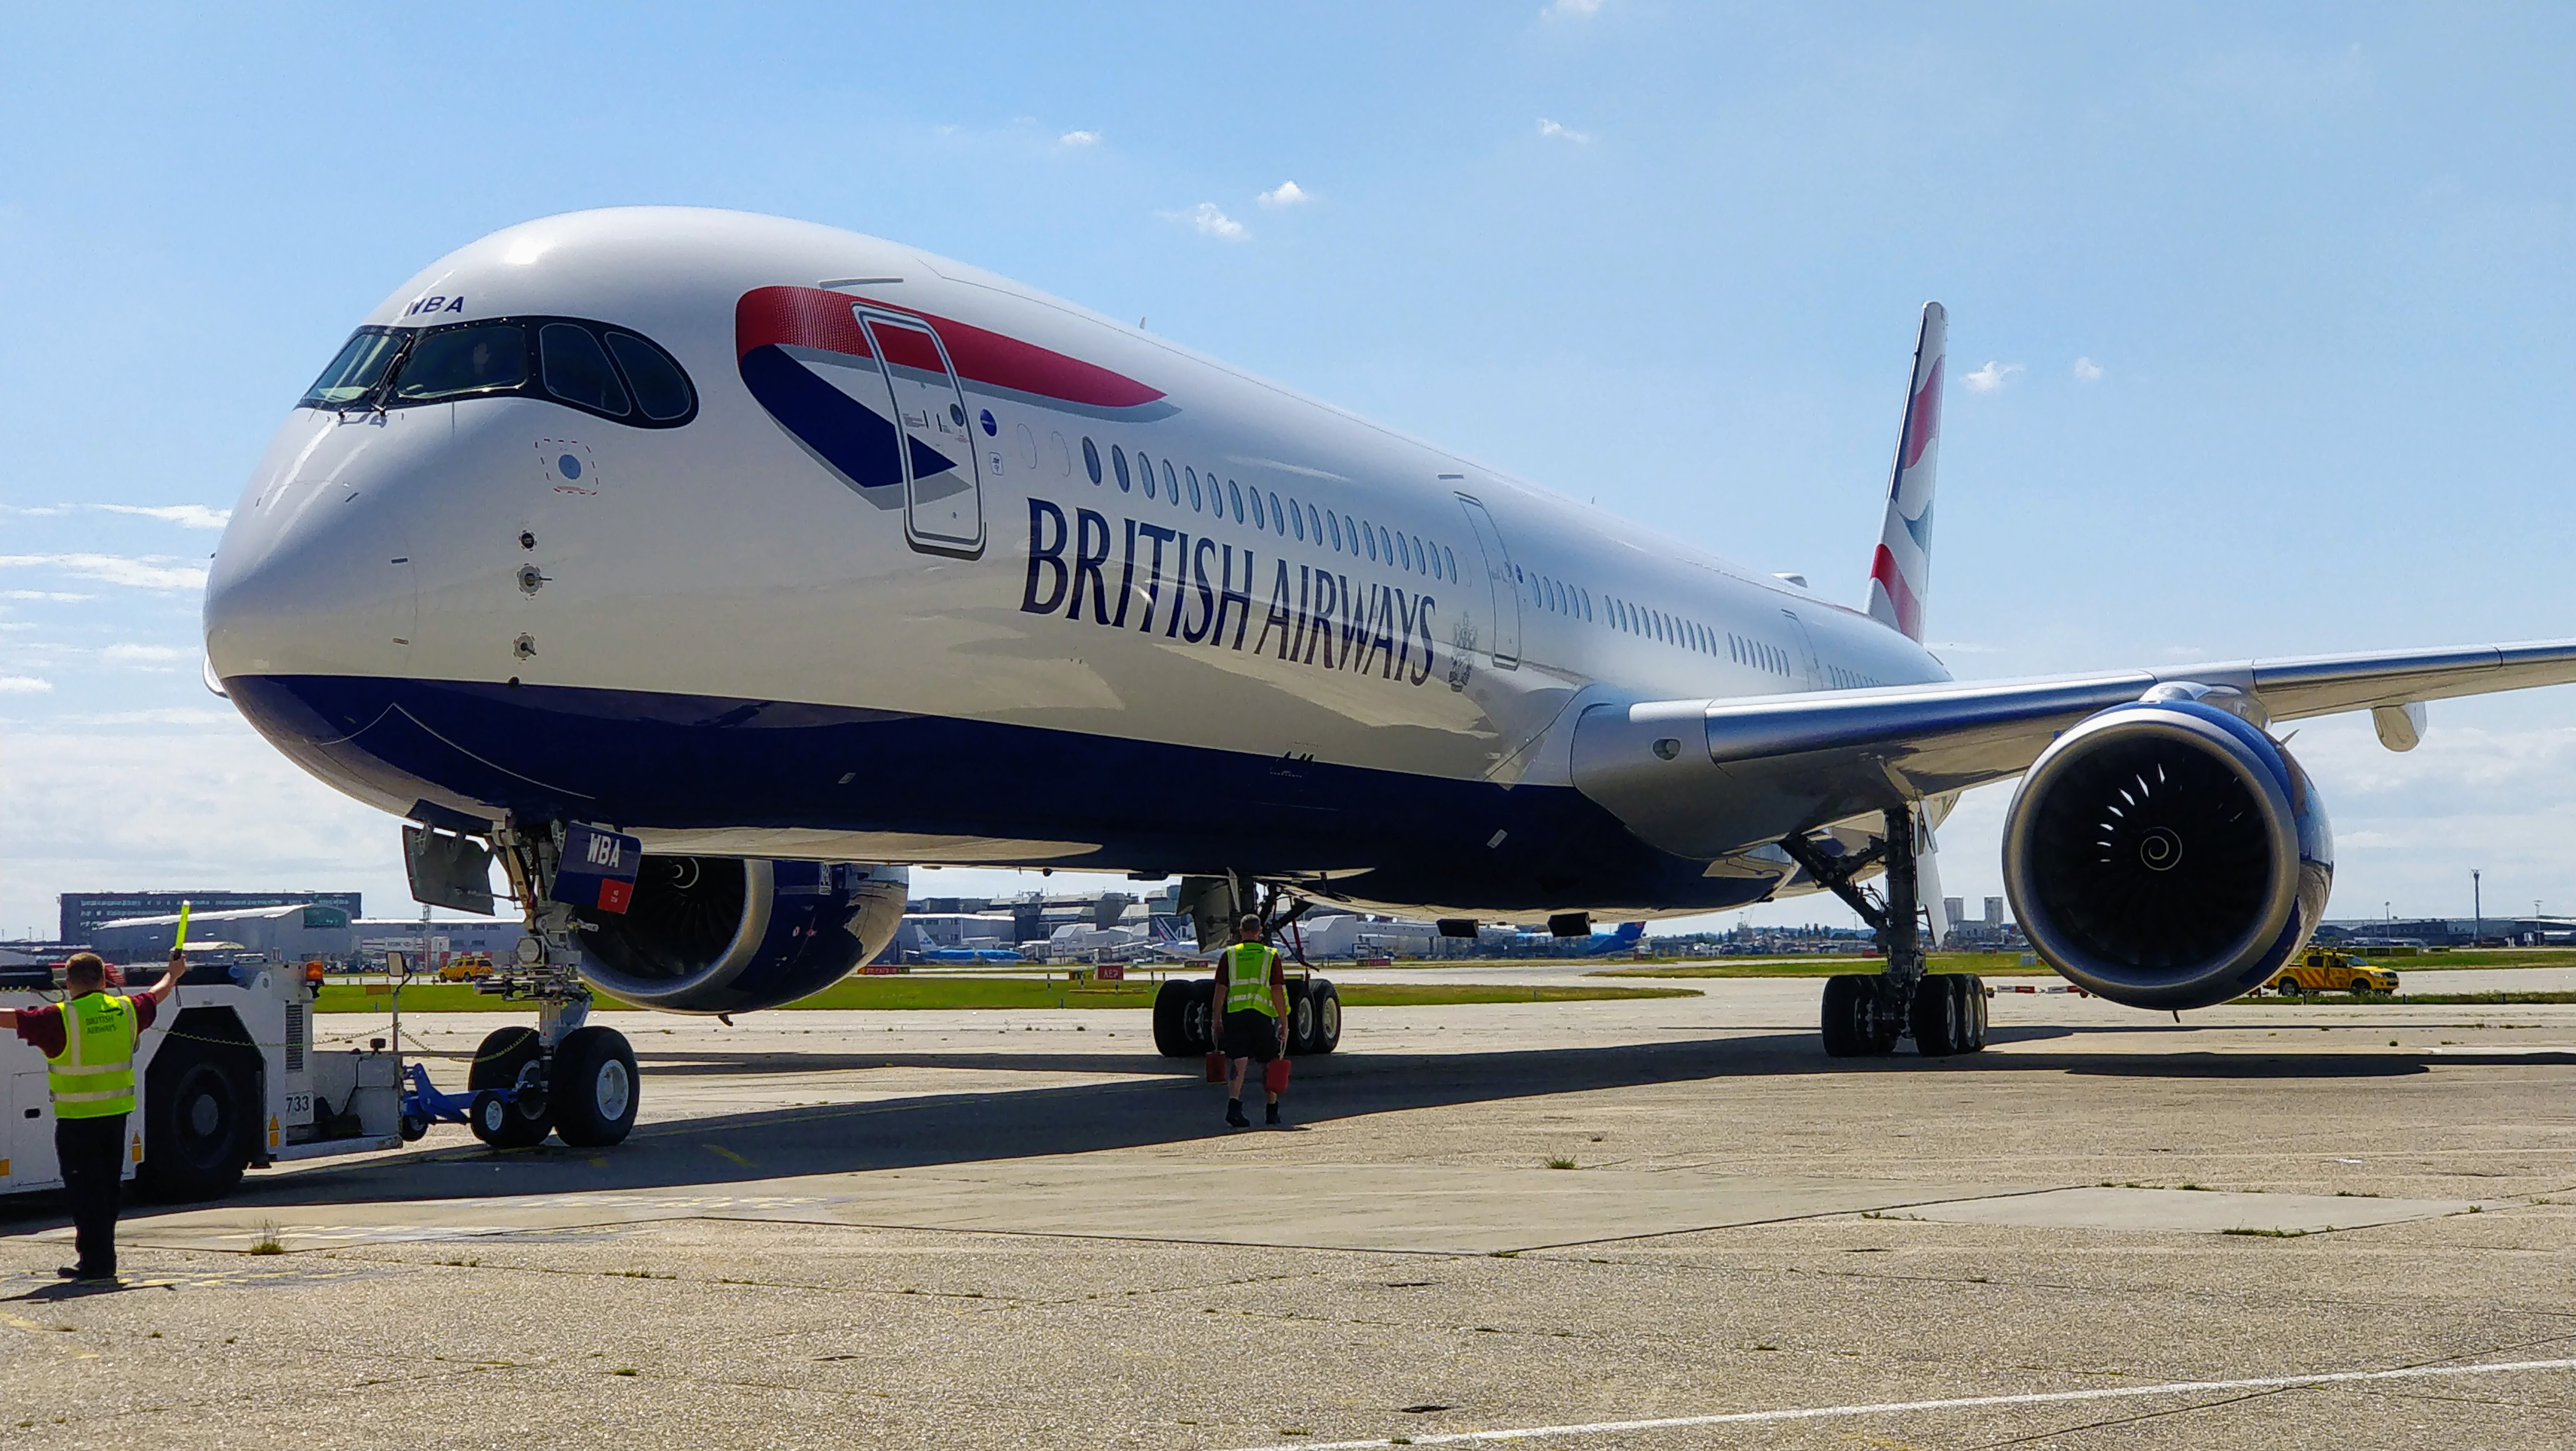 PHOTO REPORT: British Airways presents their New Club Suite